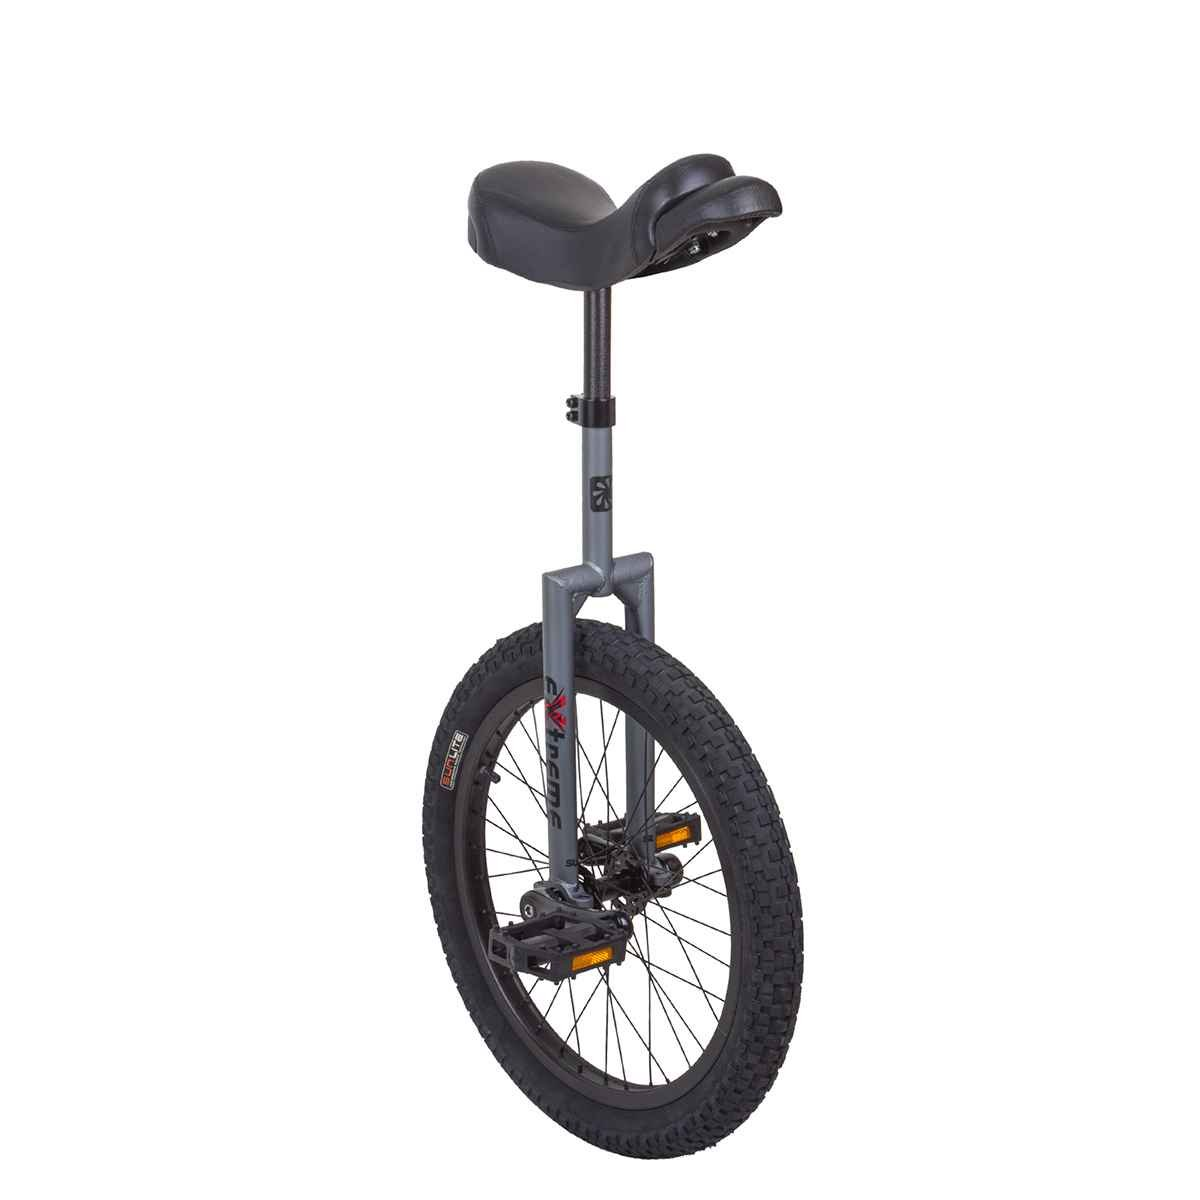 Flat Top Extreme DX Matte Gray 2014 20 Inch by SUN BICYCLES   B00I89TB7I